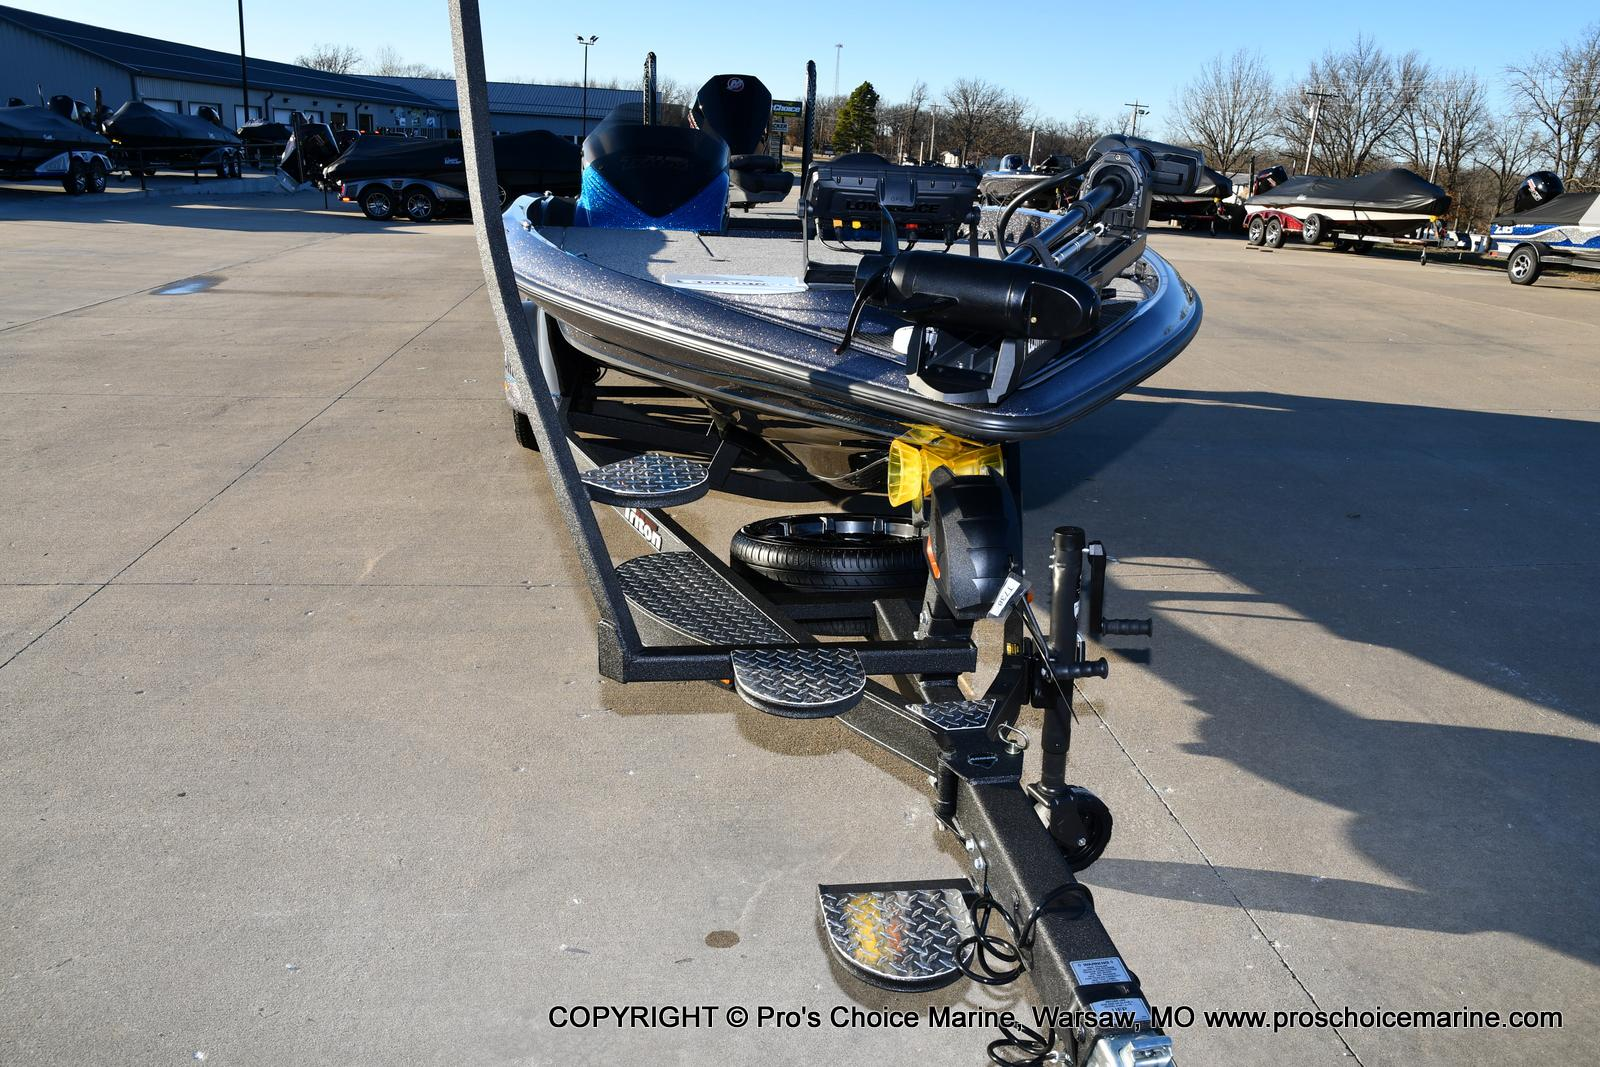 2021 Triton boat for sale, model of the boat is 20 TRX Patriot & Image # 40 of 50